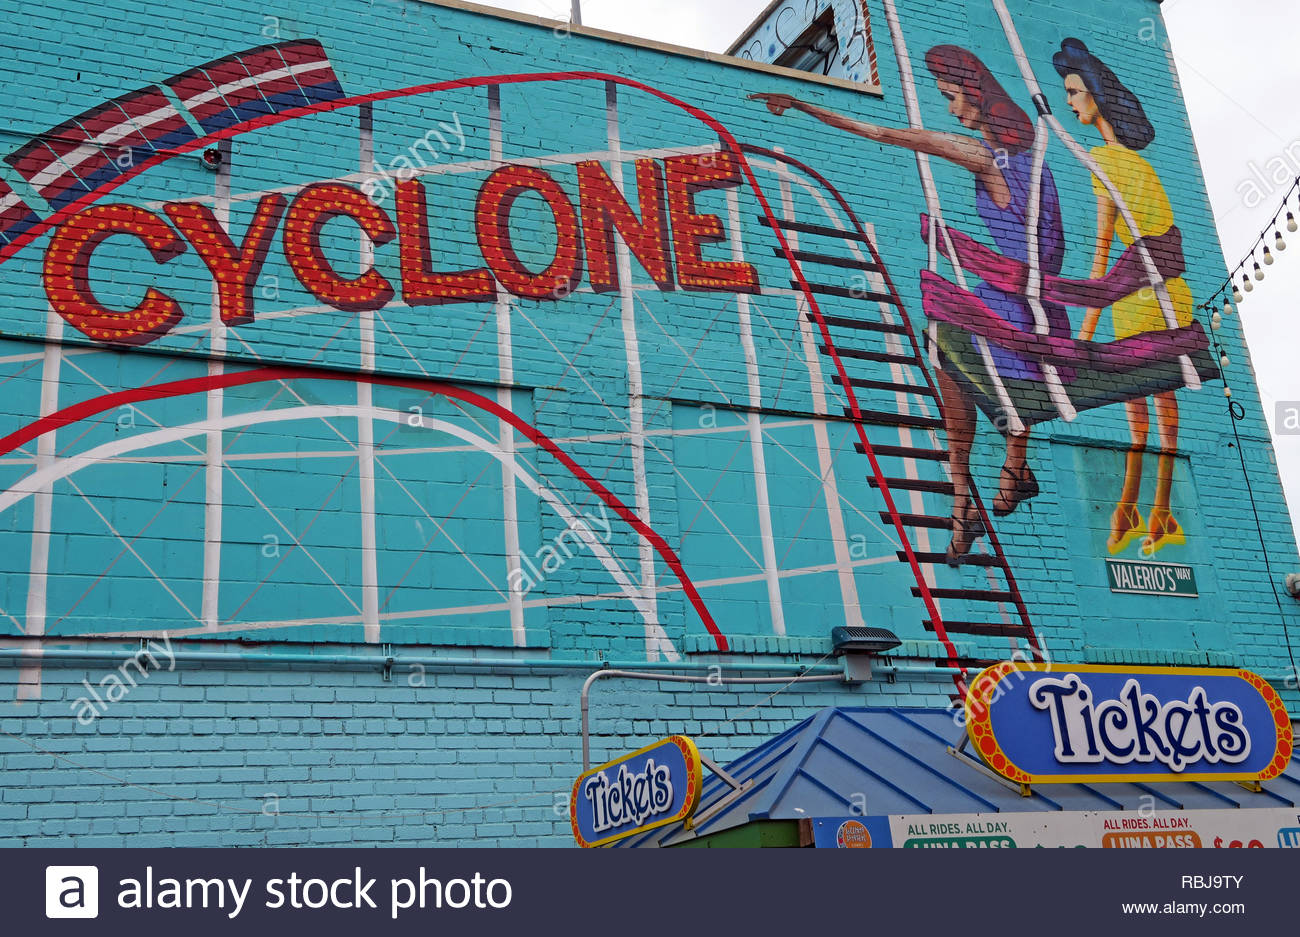 Cyclone Mural with two women, Coney Island amusement park, Brooklyn,New York, NYC, USA - Stock Image